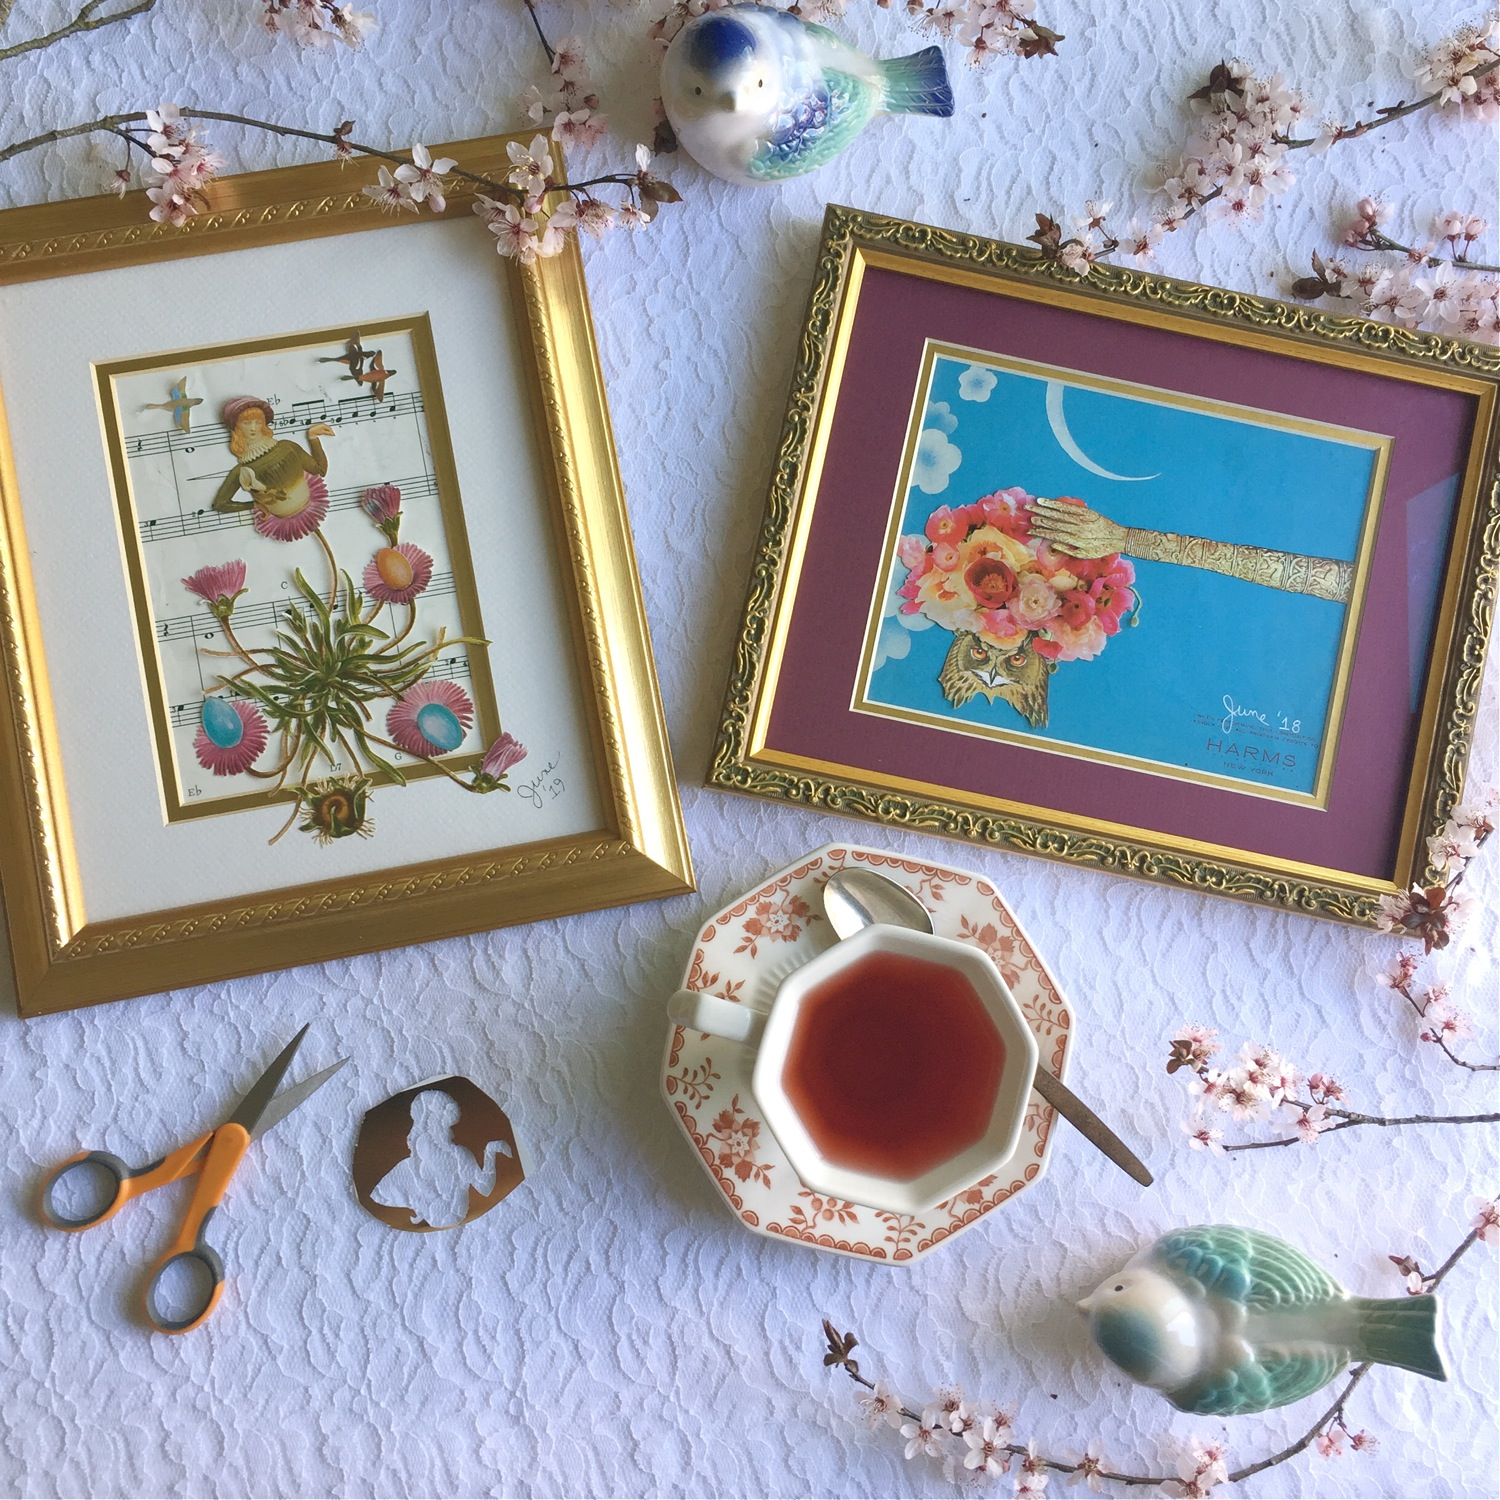 World Collage Day, World Collage Day 2019, collage making, paper collage, Mrs. Grosvenor Contemplates the Evolution of Her Next Tea Party and Owl #1 by June Anderson of Under The Plum Blossom Tree blog